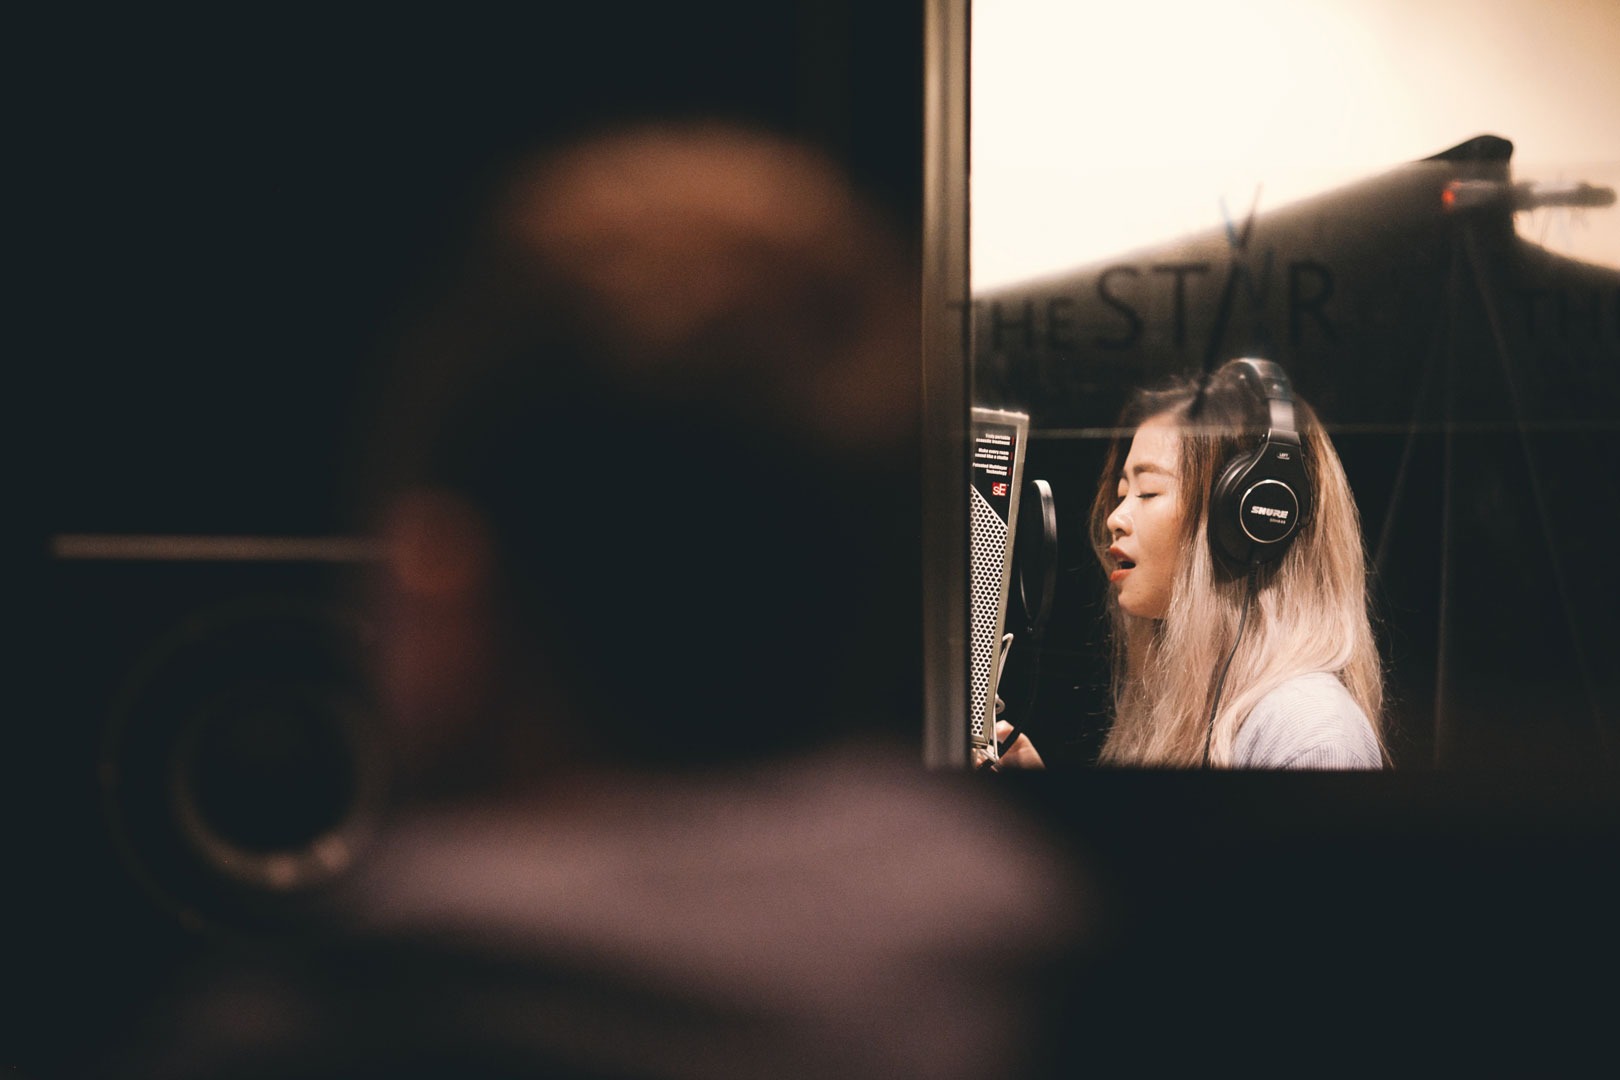 esther-lo-singing-luke-munns-recording.jpg